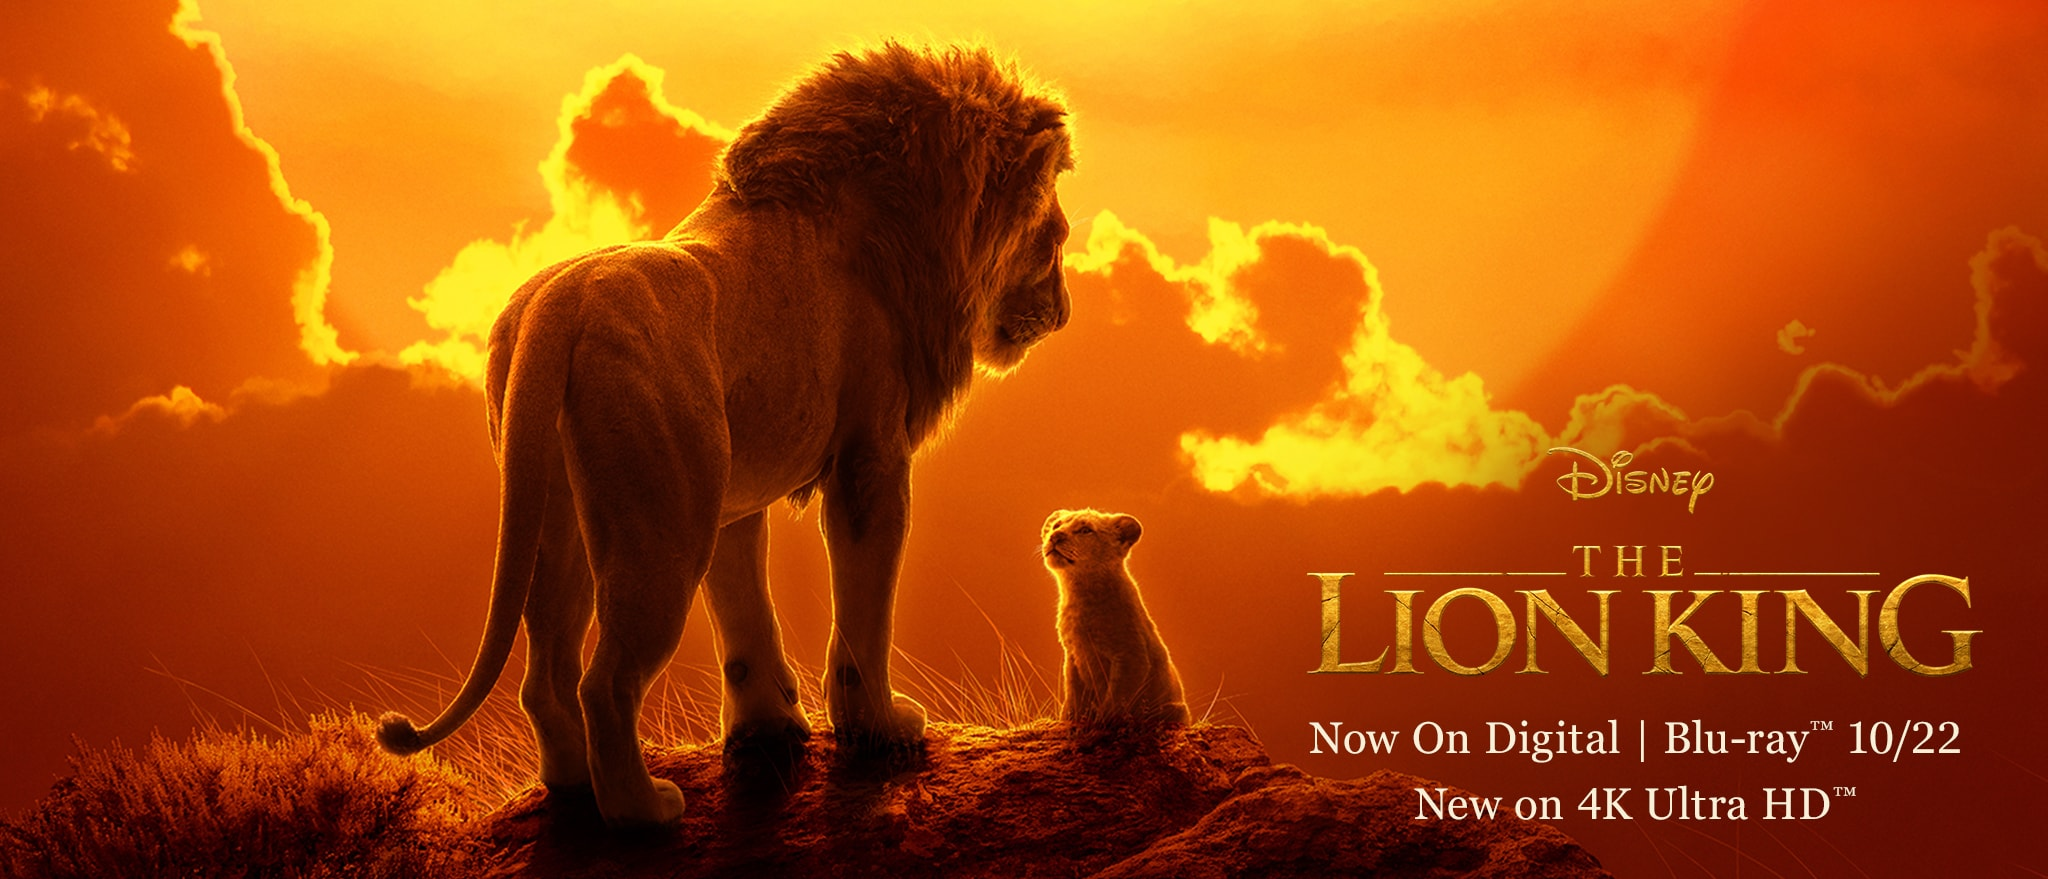 Disney - The Lion King - Now on digital, on Blu-ray October 22. New on 4K Ultra HD.